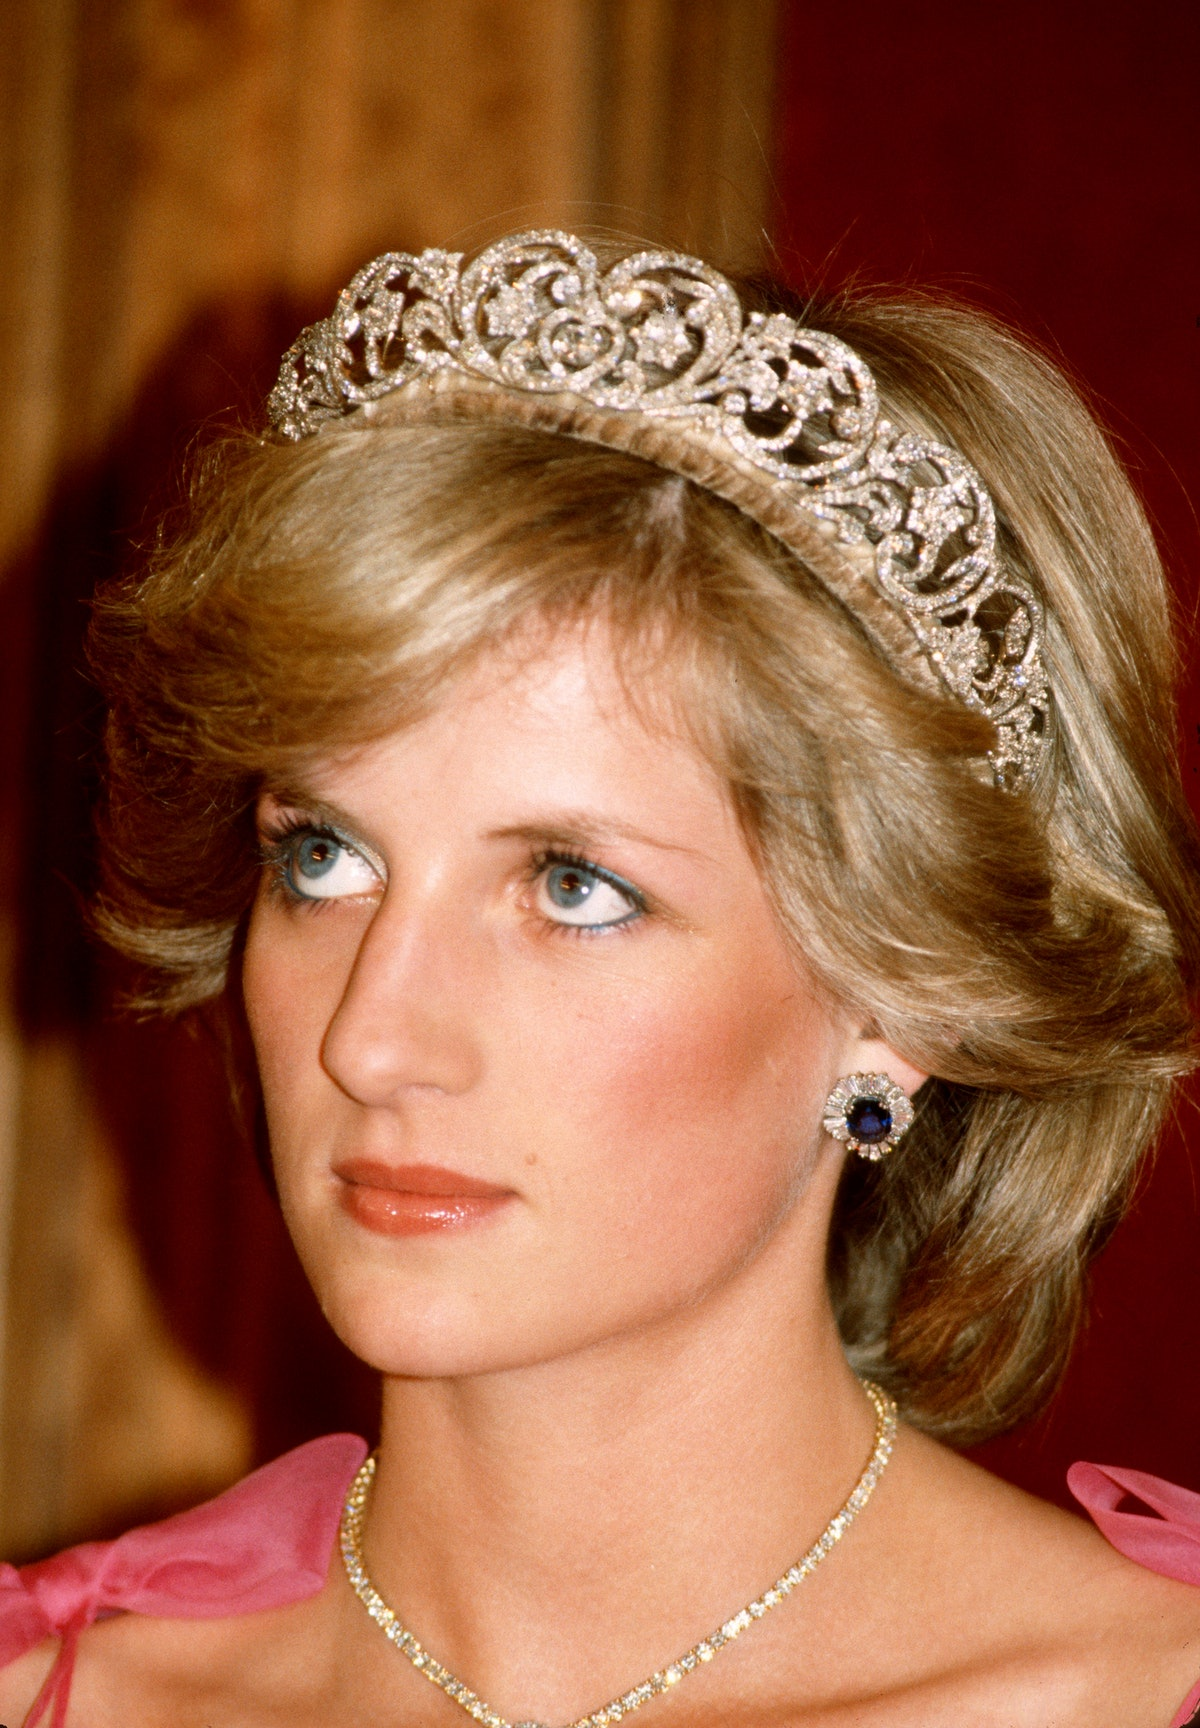 Princess Diana kept it simple when it came to cosmetics, but her timeless beauty continues to inspire.